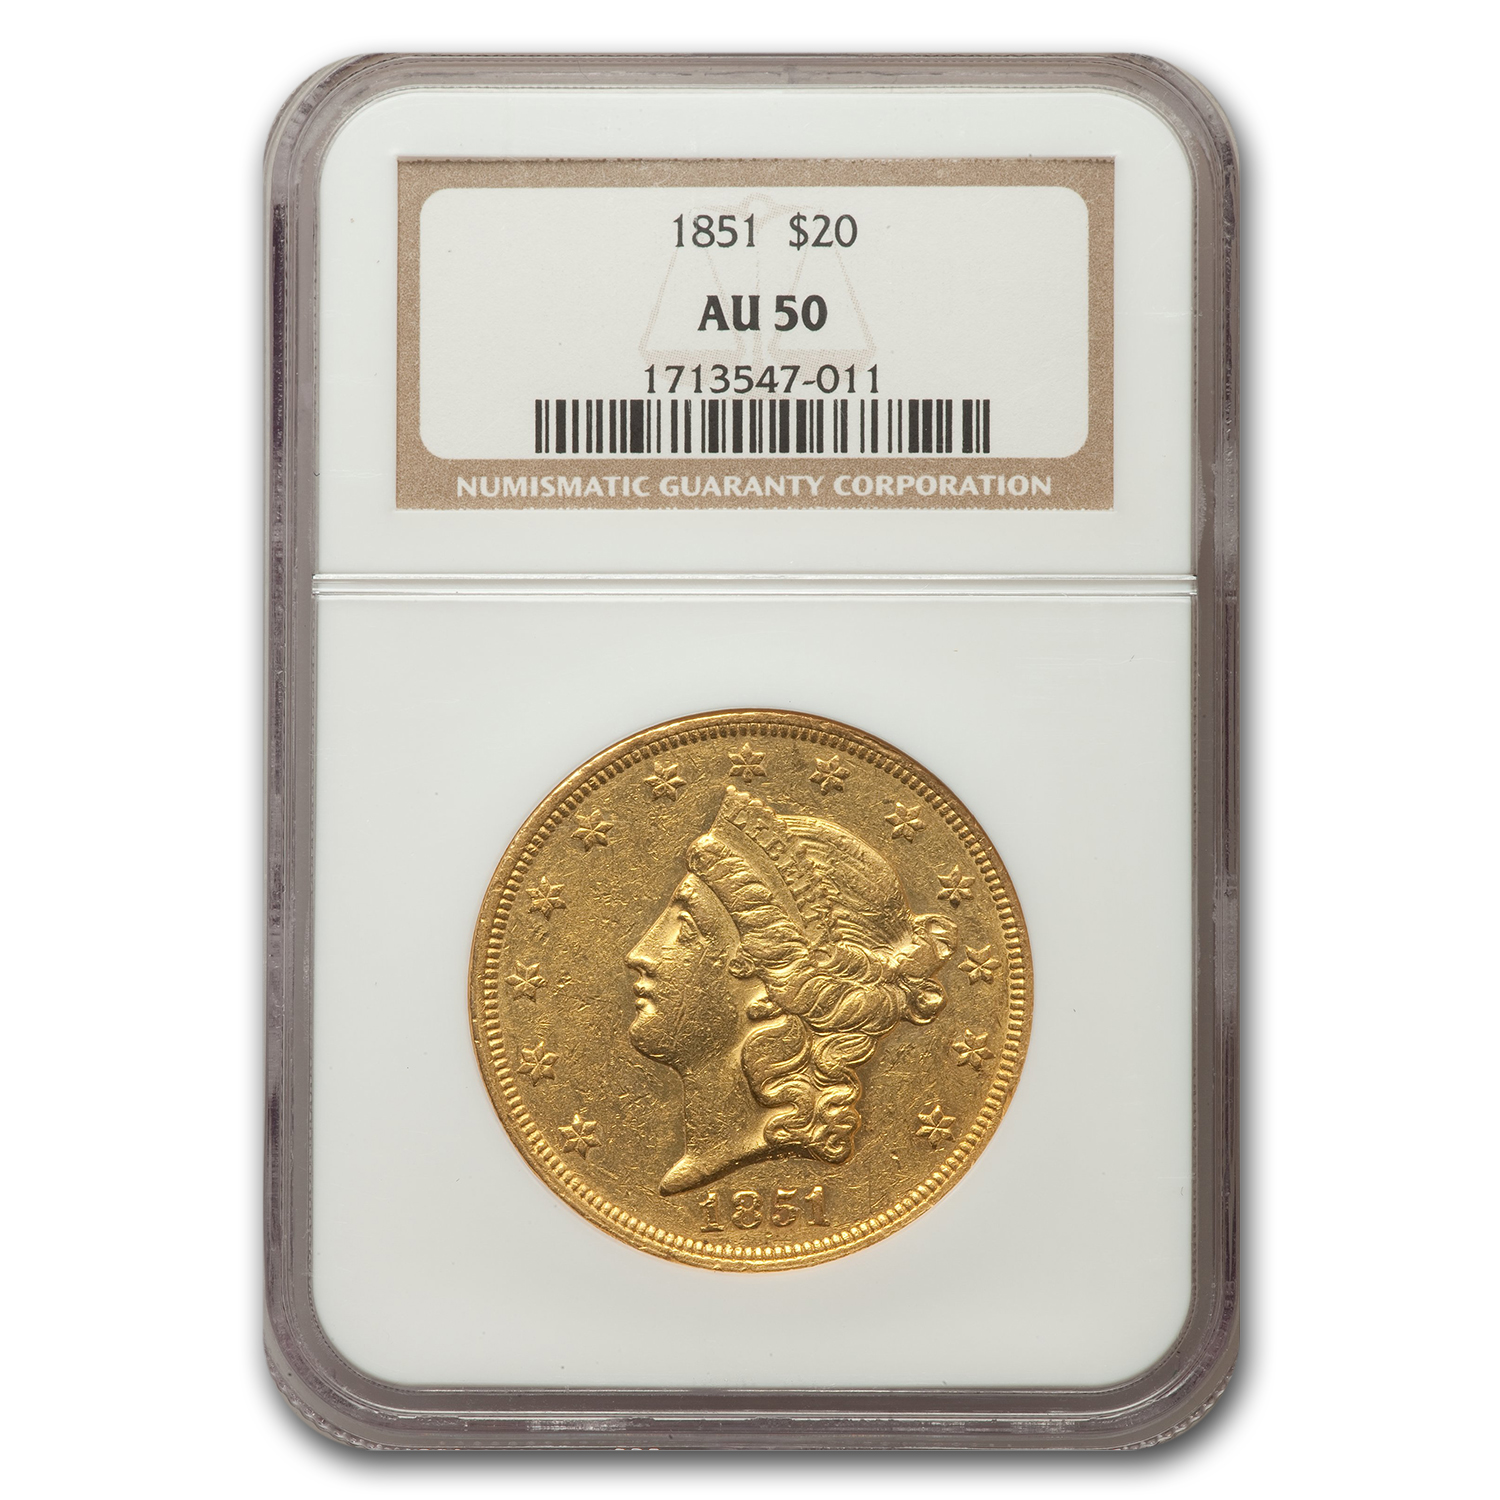 1851 $20 Liberty Gold Double Eagle Almost Unc - 50 NGC